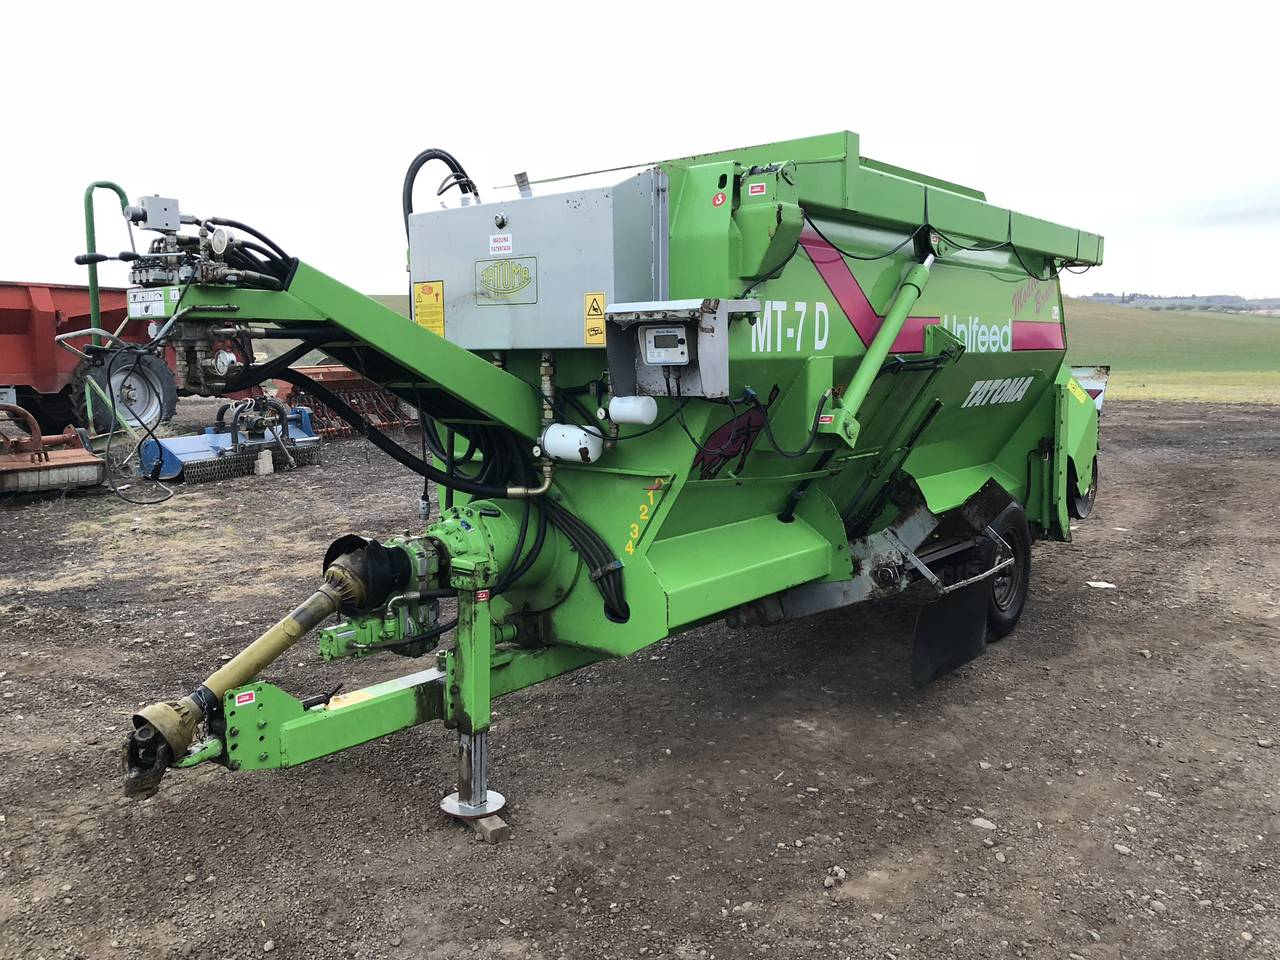 D960 Unifeed Tatoma MT-7D